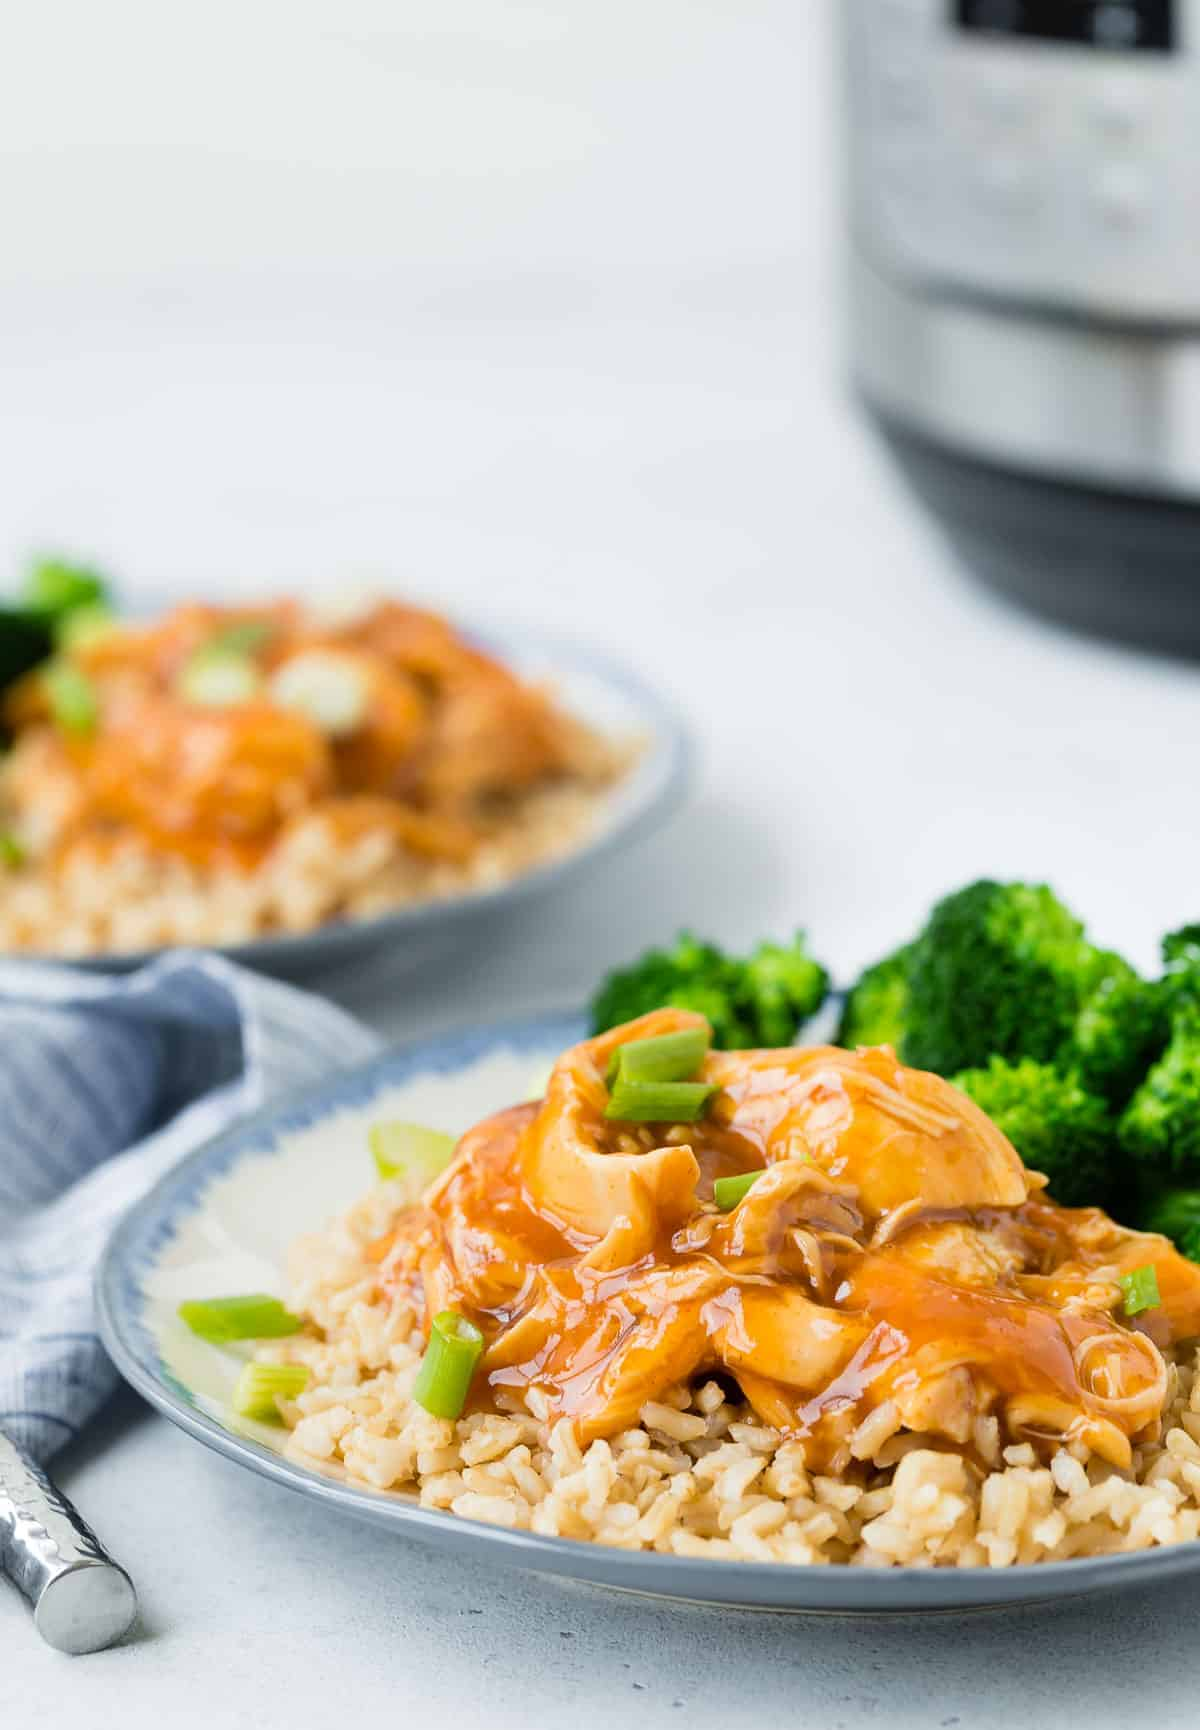 Two plates of glazed chicken, rice, and broccoli, with an instant pot in the background.